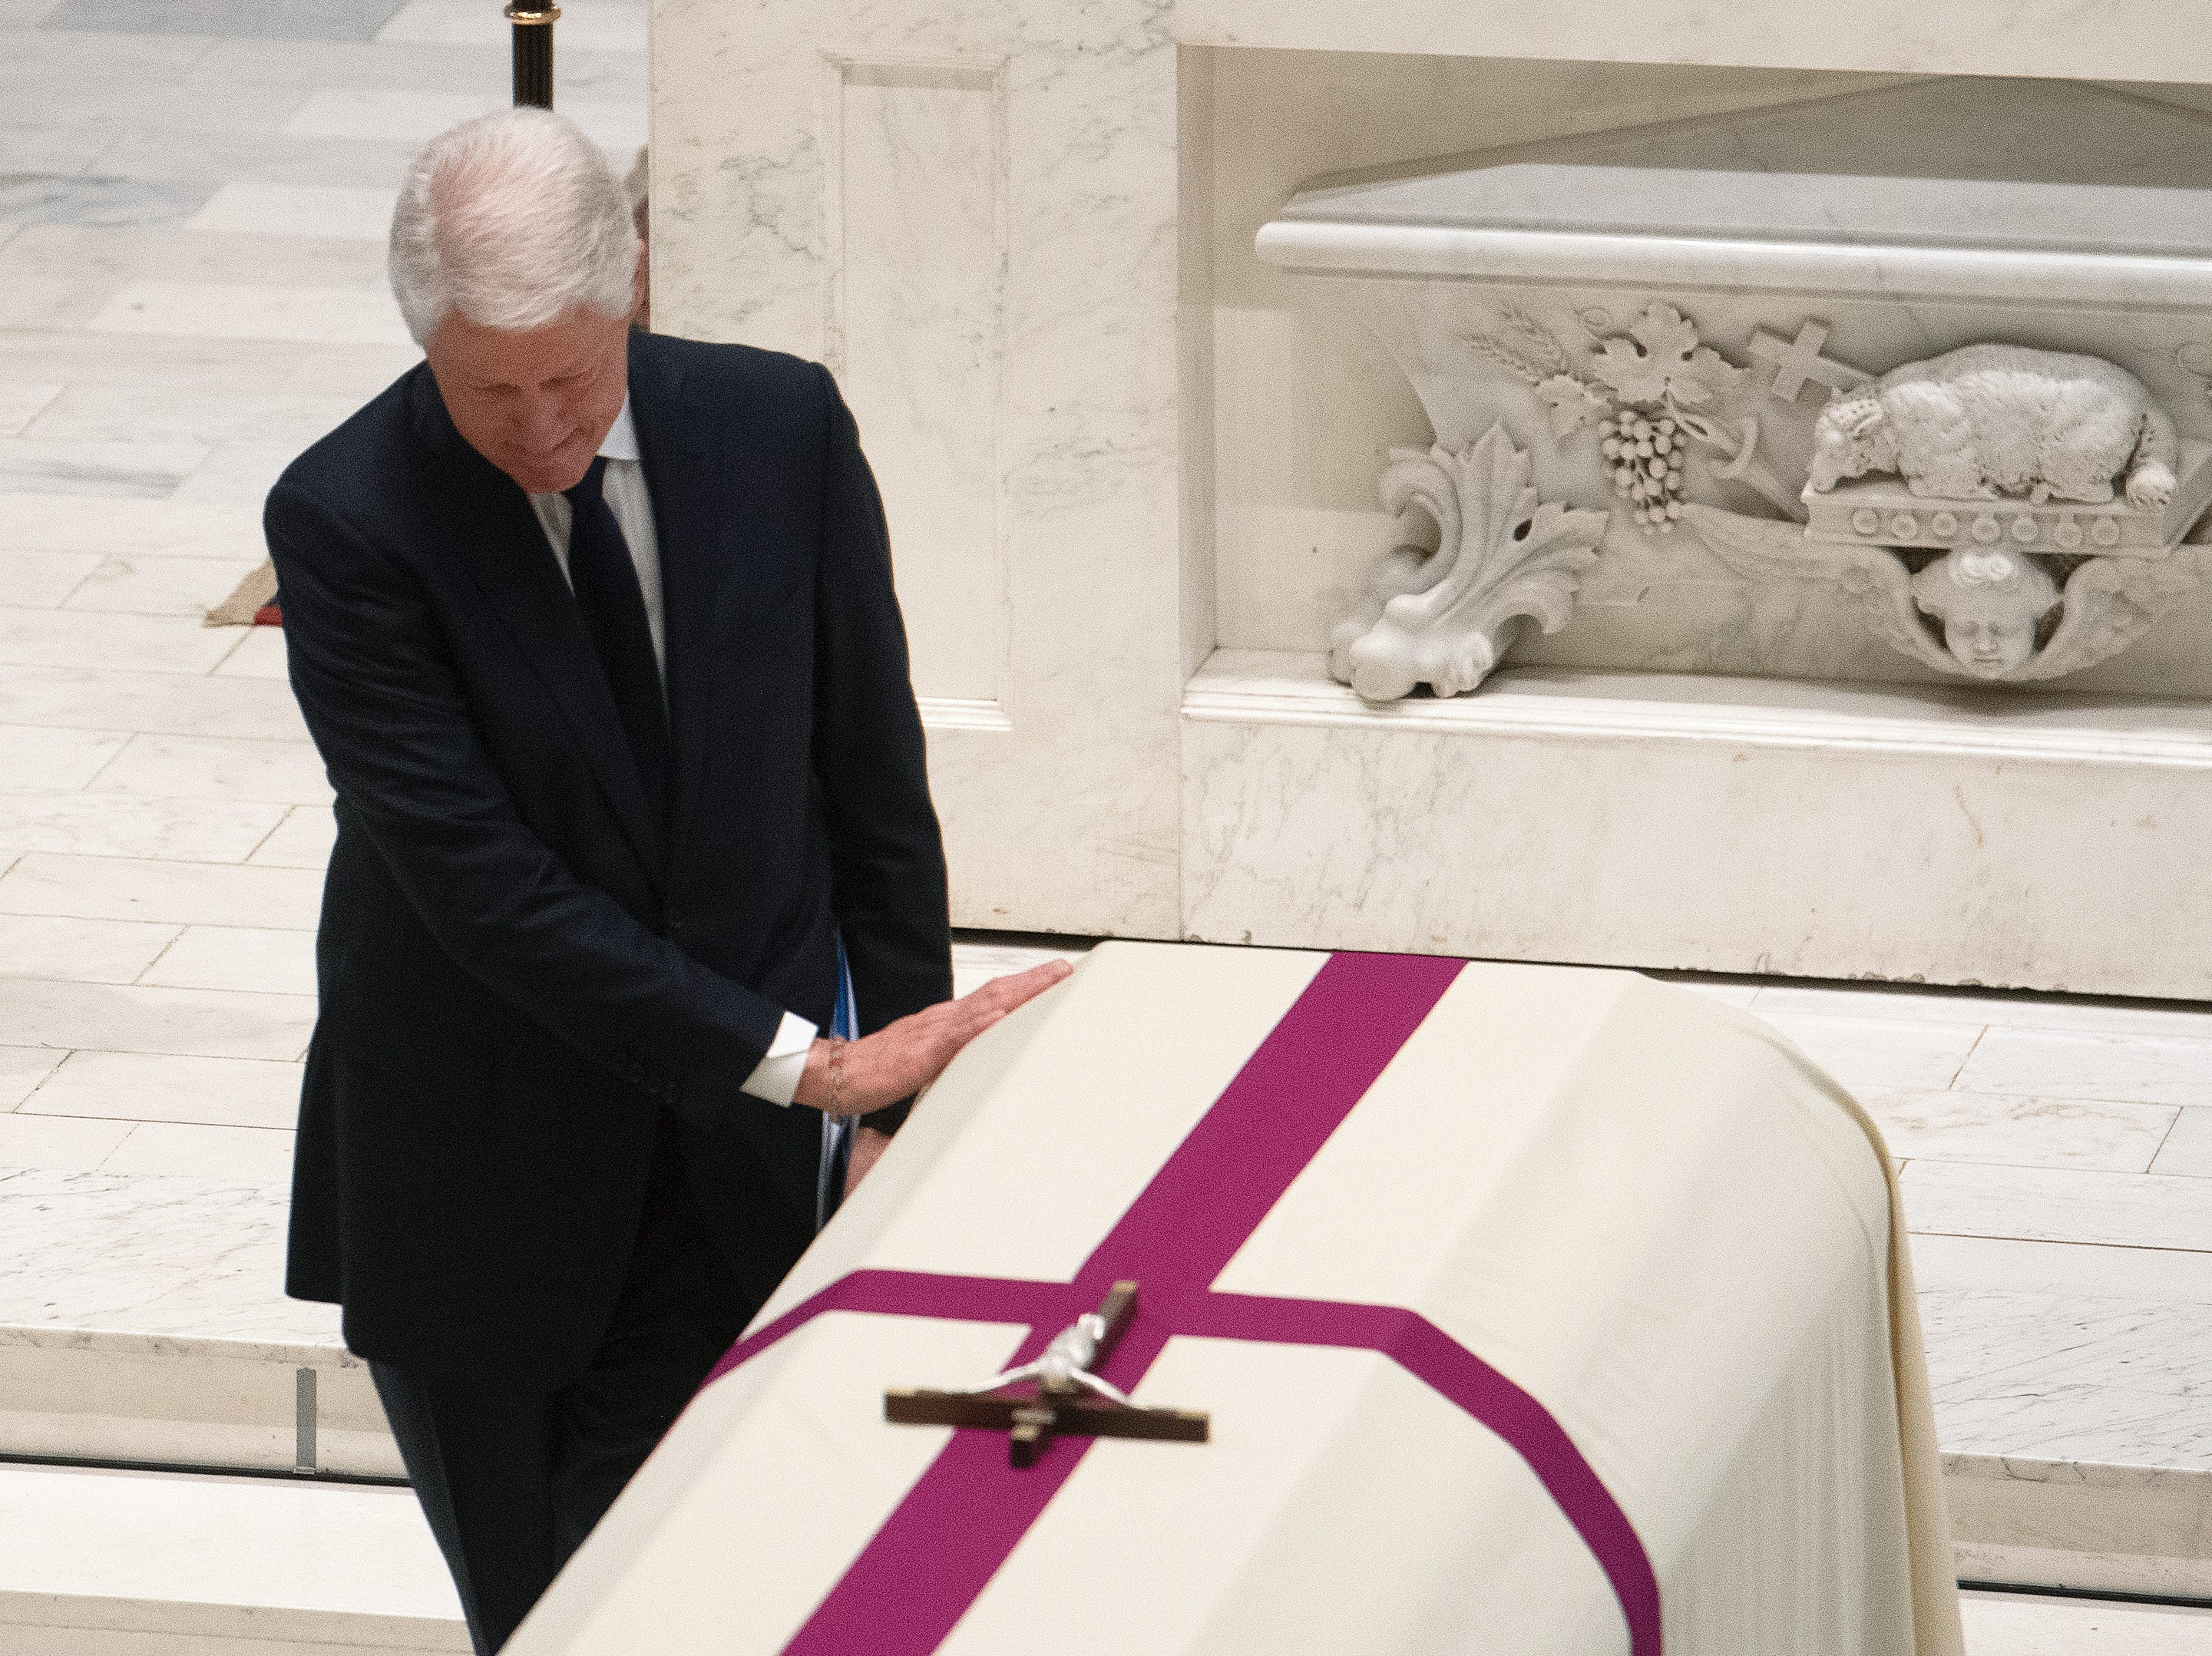 Former President Bill Clinton touches the casket of former Rep. John Dingell, D-Dearborn, after addressing the funeral at the Holy Trinity Catholic Church in Washington.